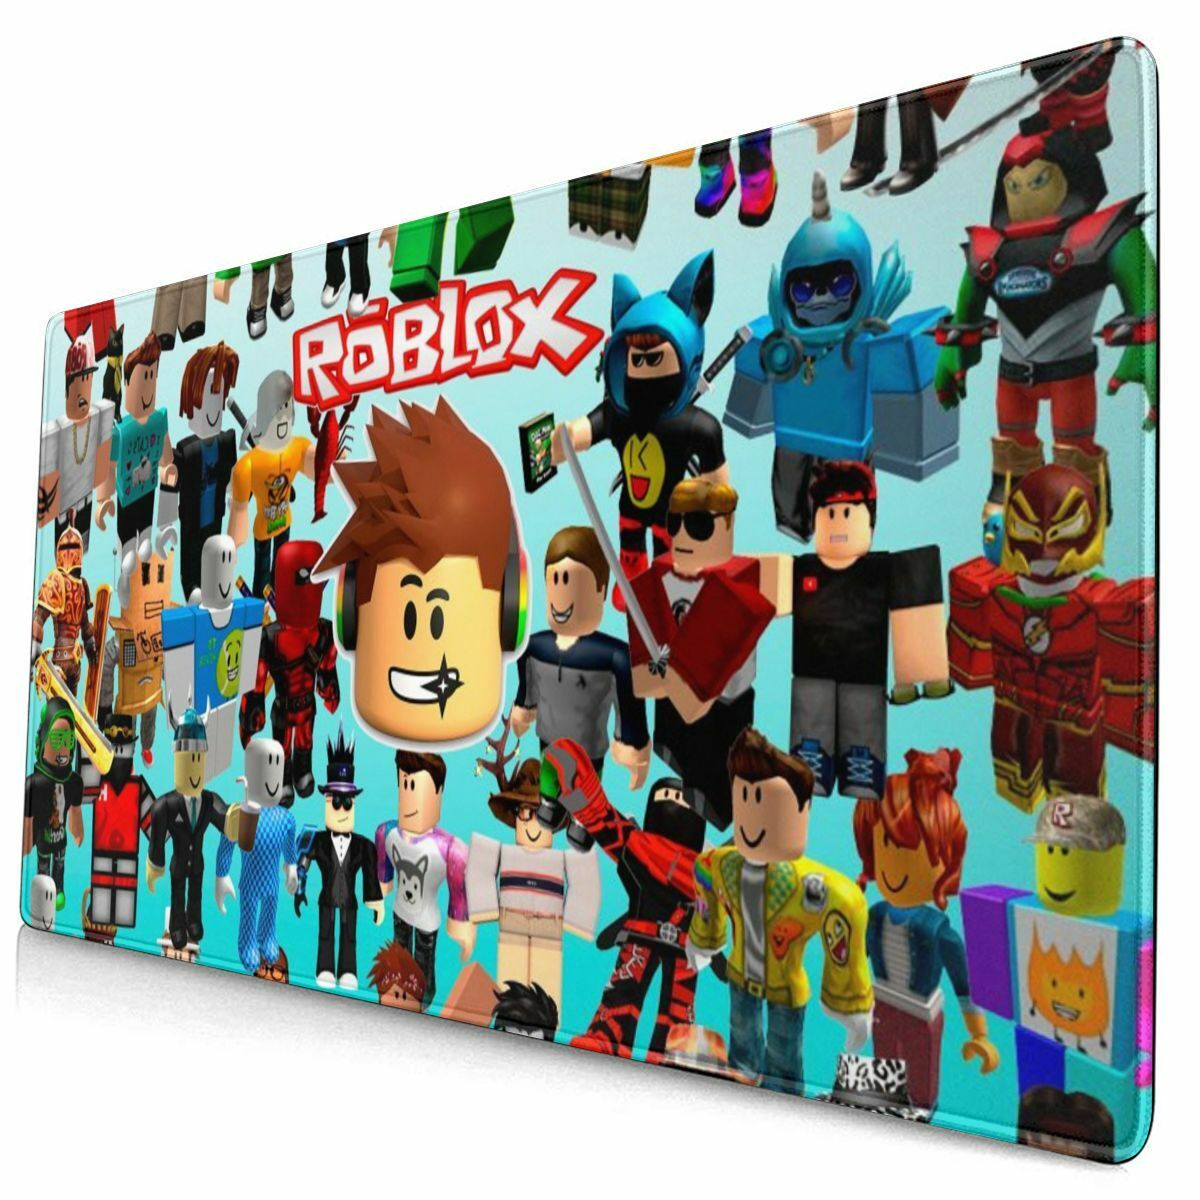 Roblox Mouse Lock Not Working Diy Roblox Gaming Mouse Pad Non Slip Desk Keyboard Mat Game Playmat 3 Large Size Ebay